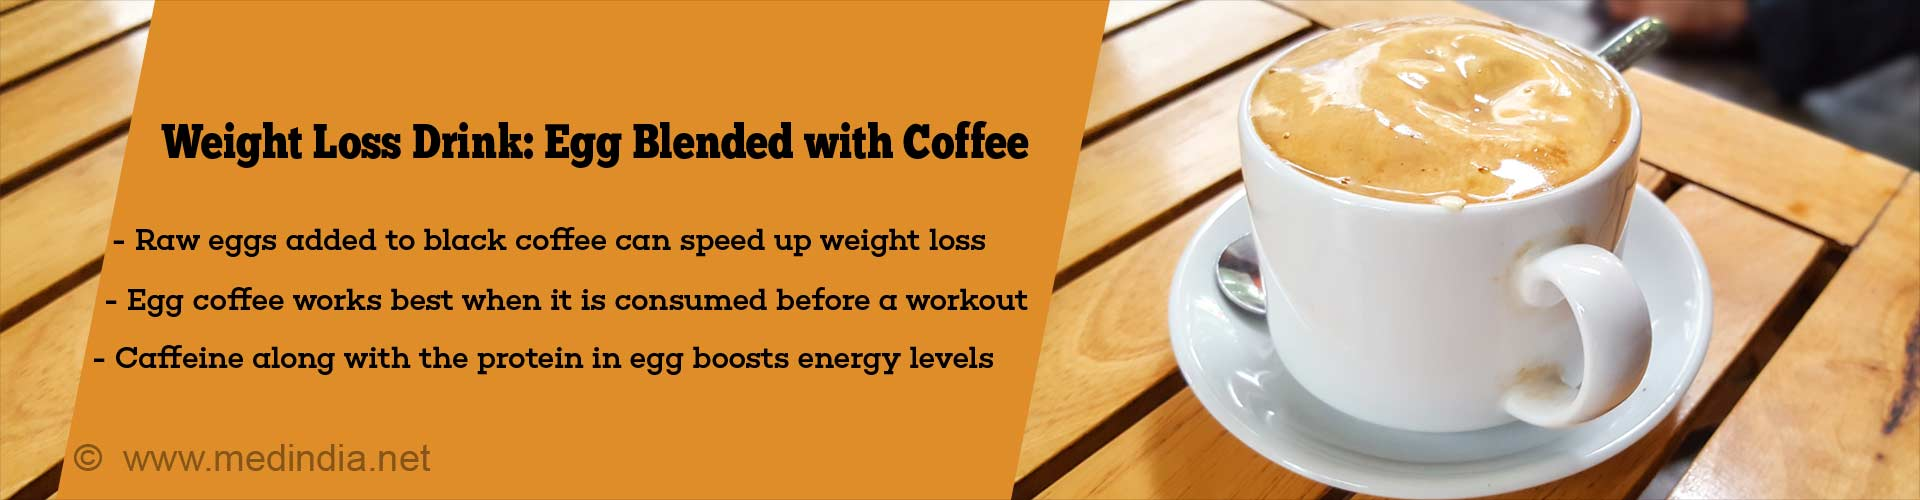 weight loss drink: egg blended with coffee - raw eggs added to black coffee can speed up weight loss - egg coffee work best when it is consumed after a workout - caffeine along with the protein in egg boosts energy levels